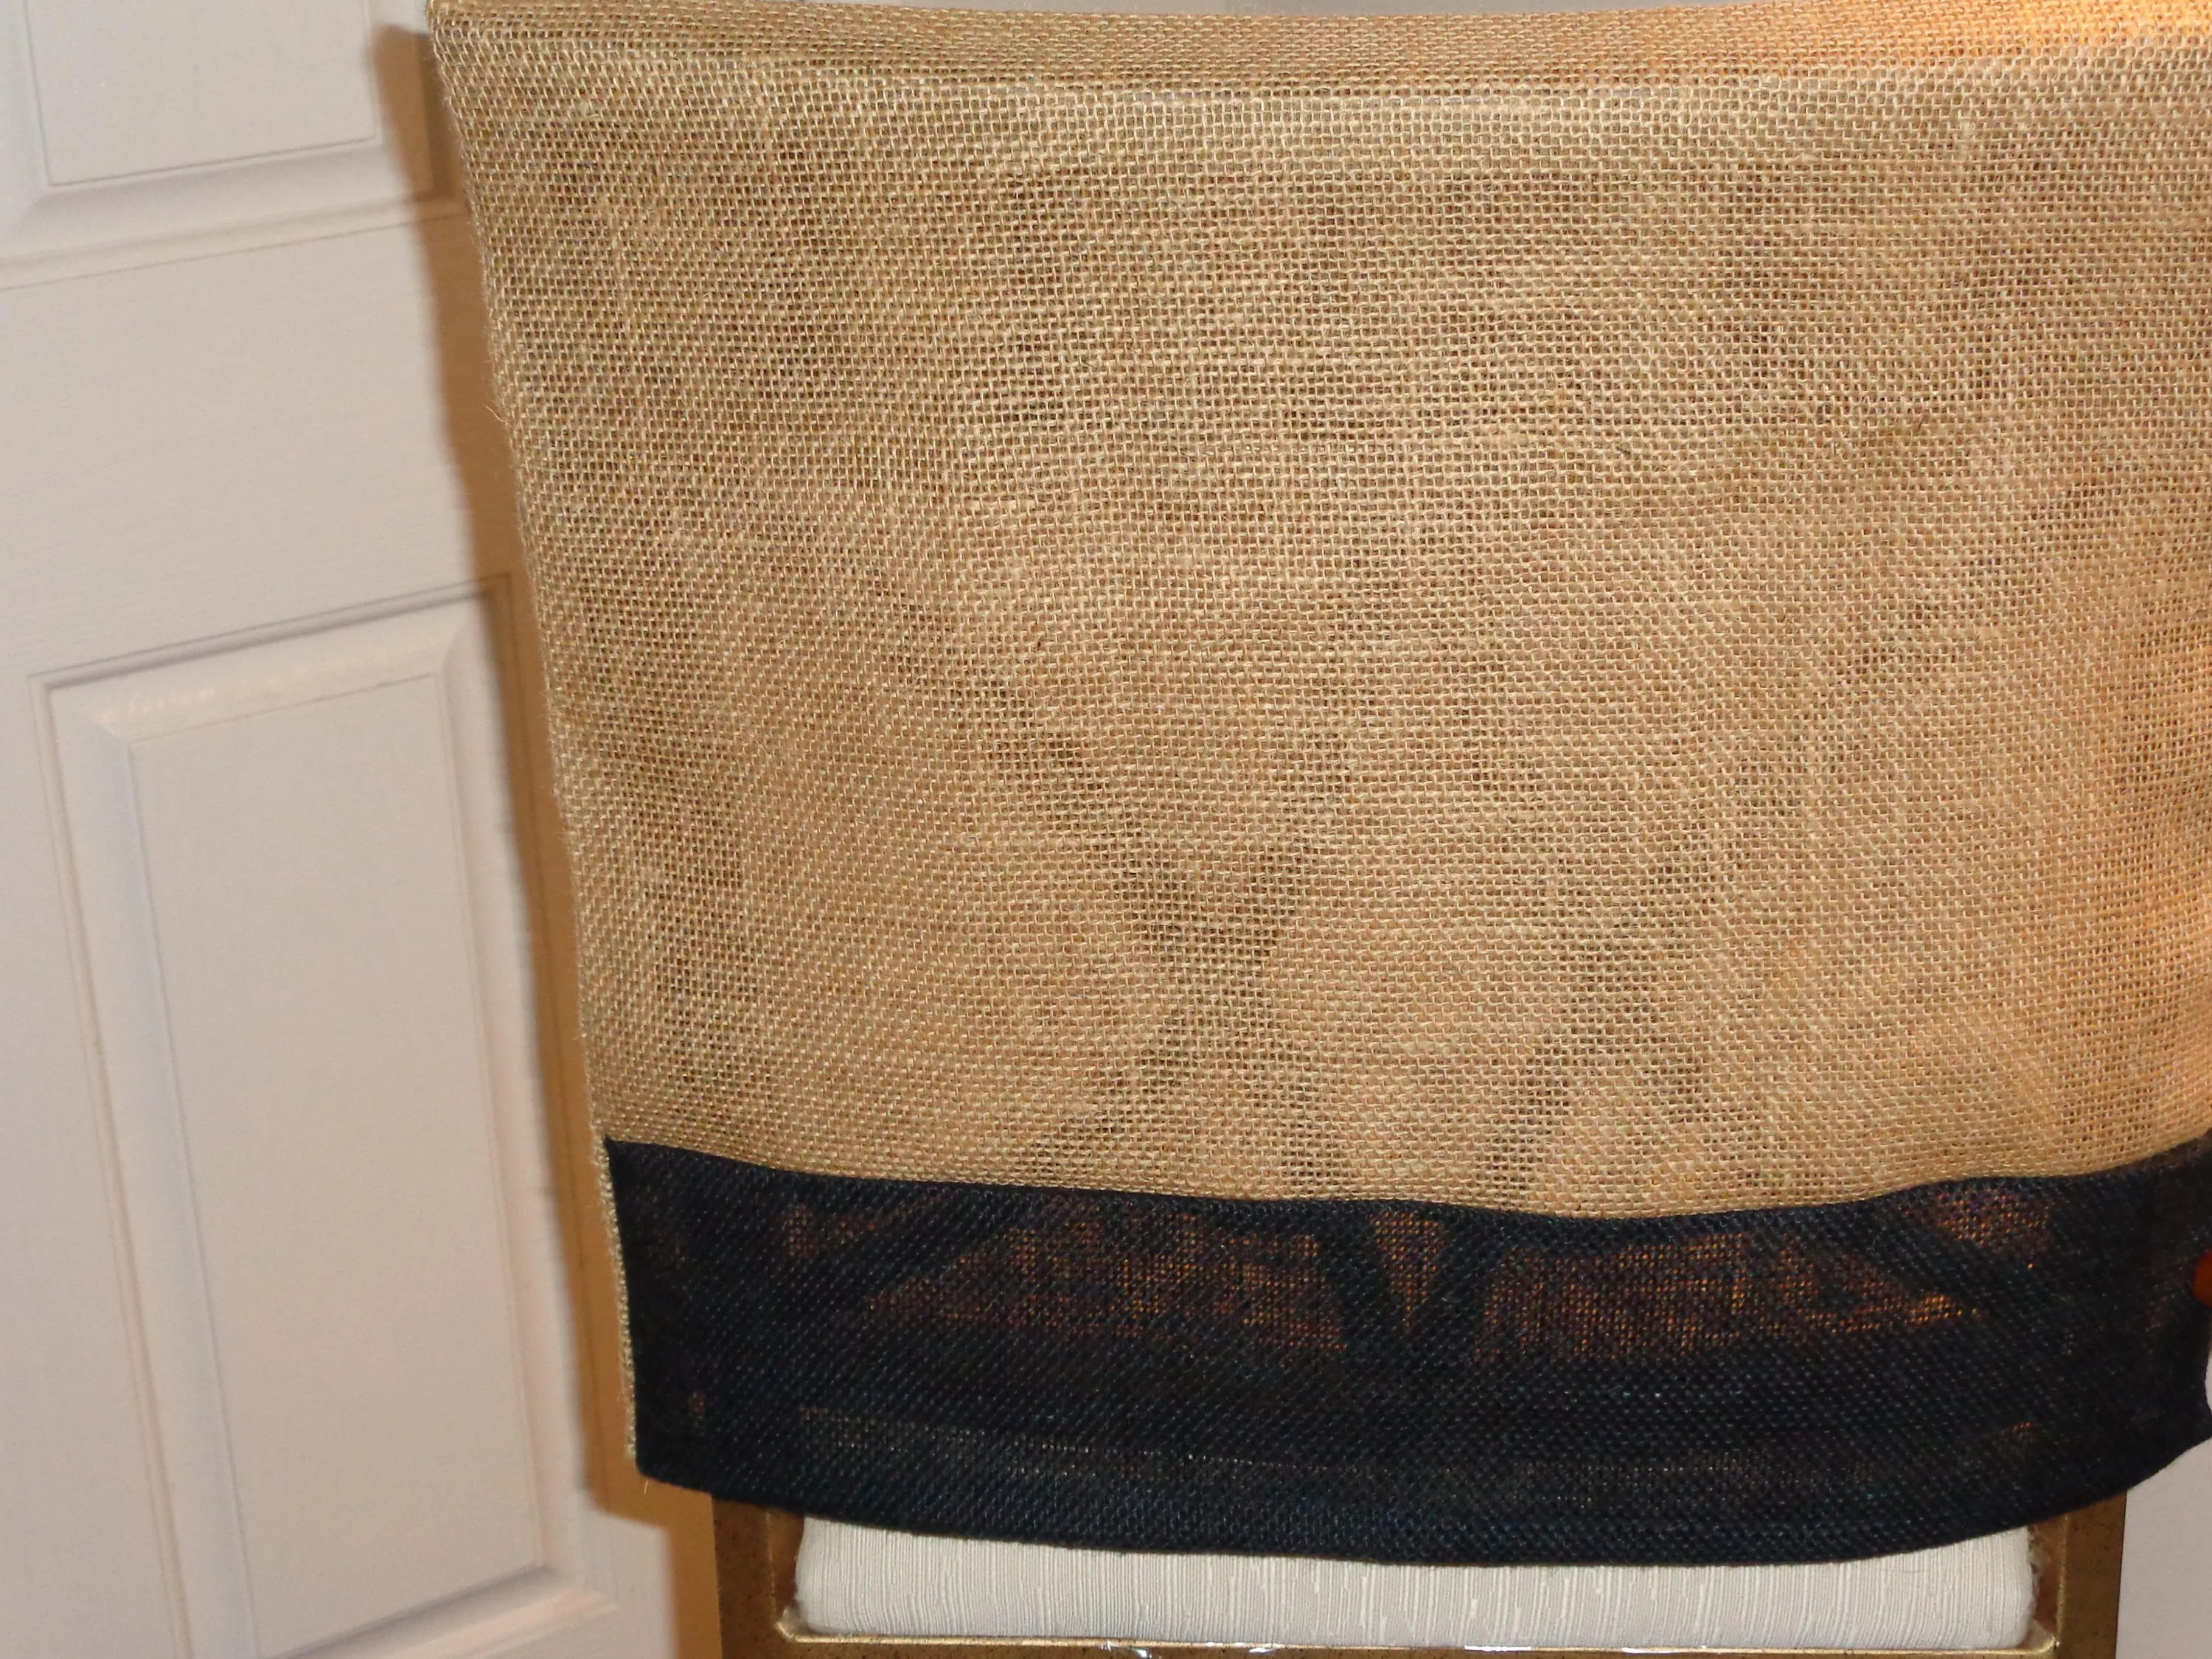 burlap dining chair covers round table for 6 chairs etsy back cover two tone natural black bar stools special occasions pub weddings rustic dinners